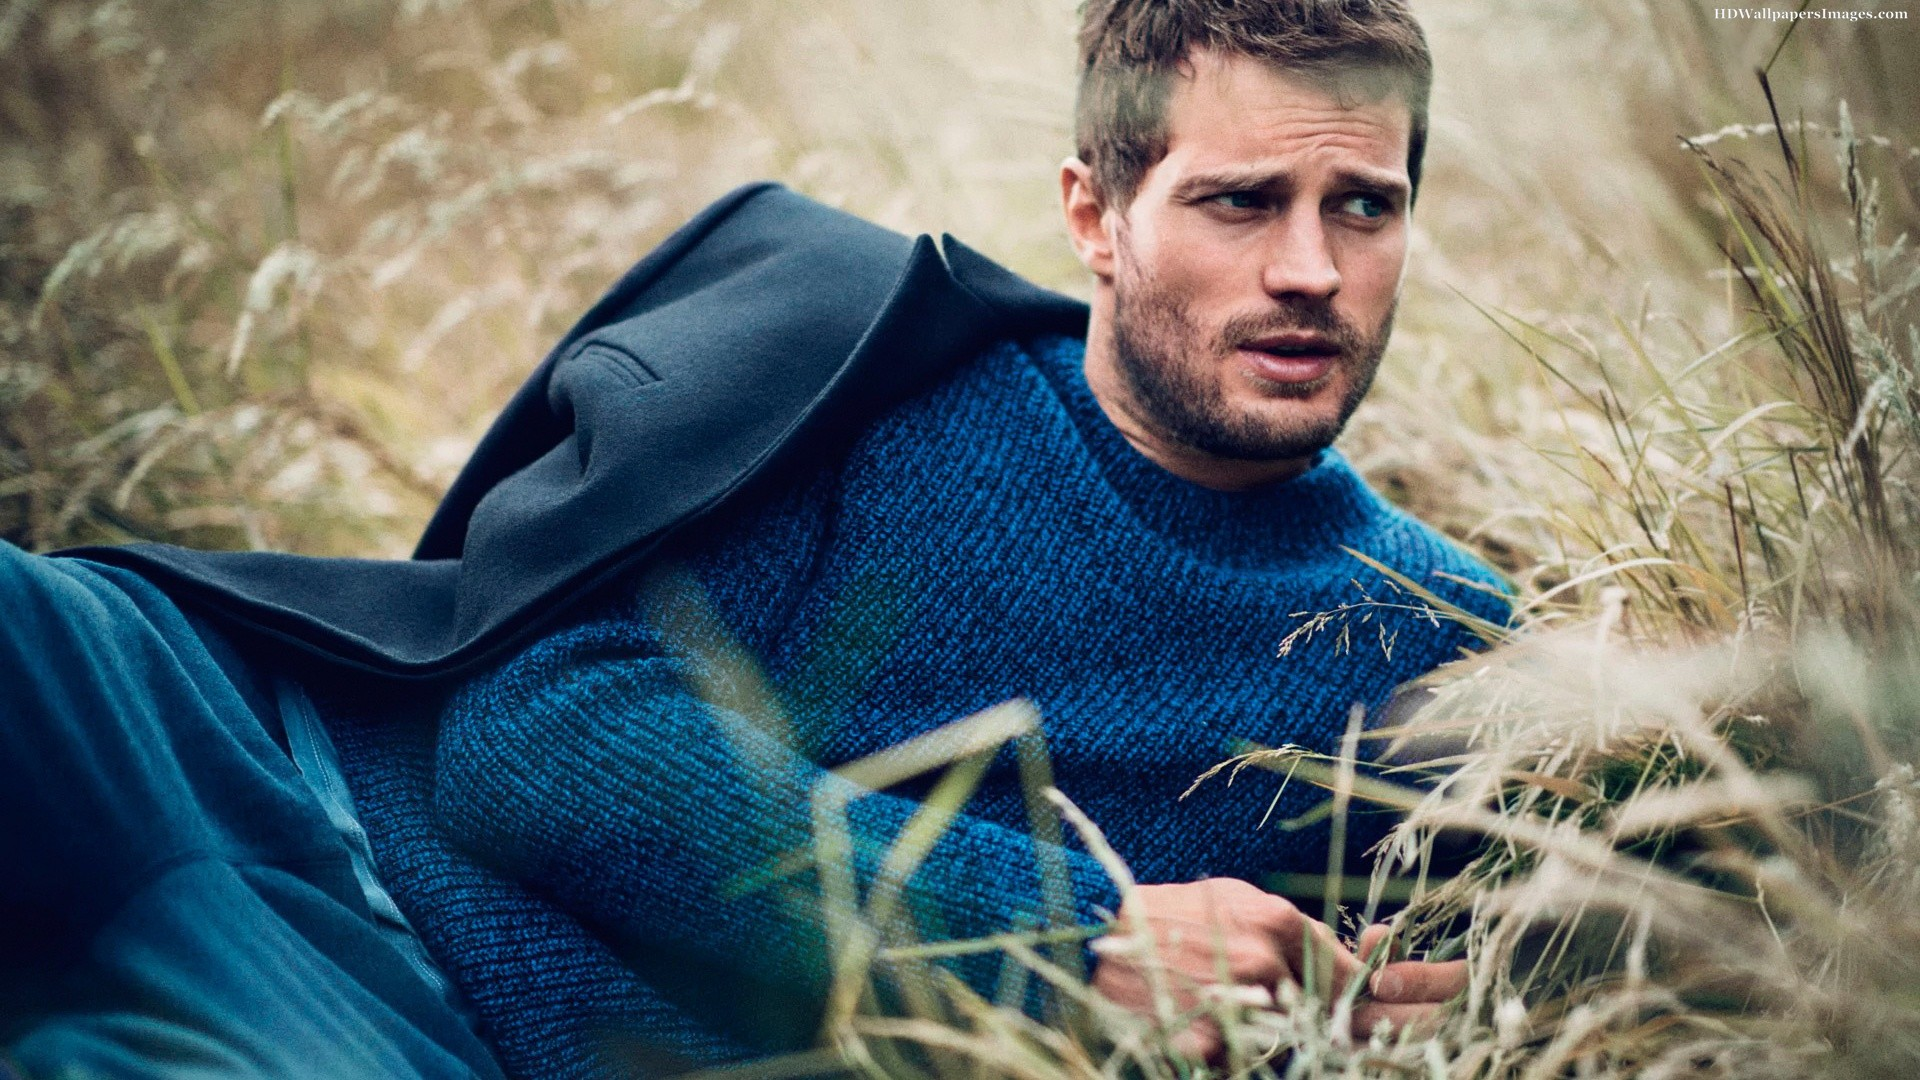 Cars 1 Full Movie >> Jamie Dornan Wallpapers High Resolution and Quality Download